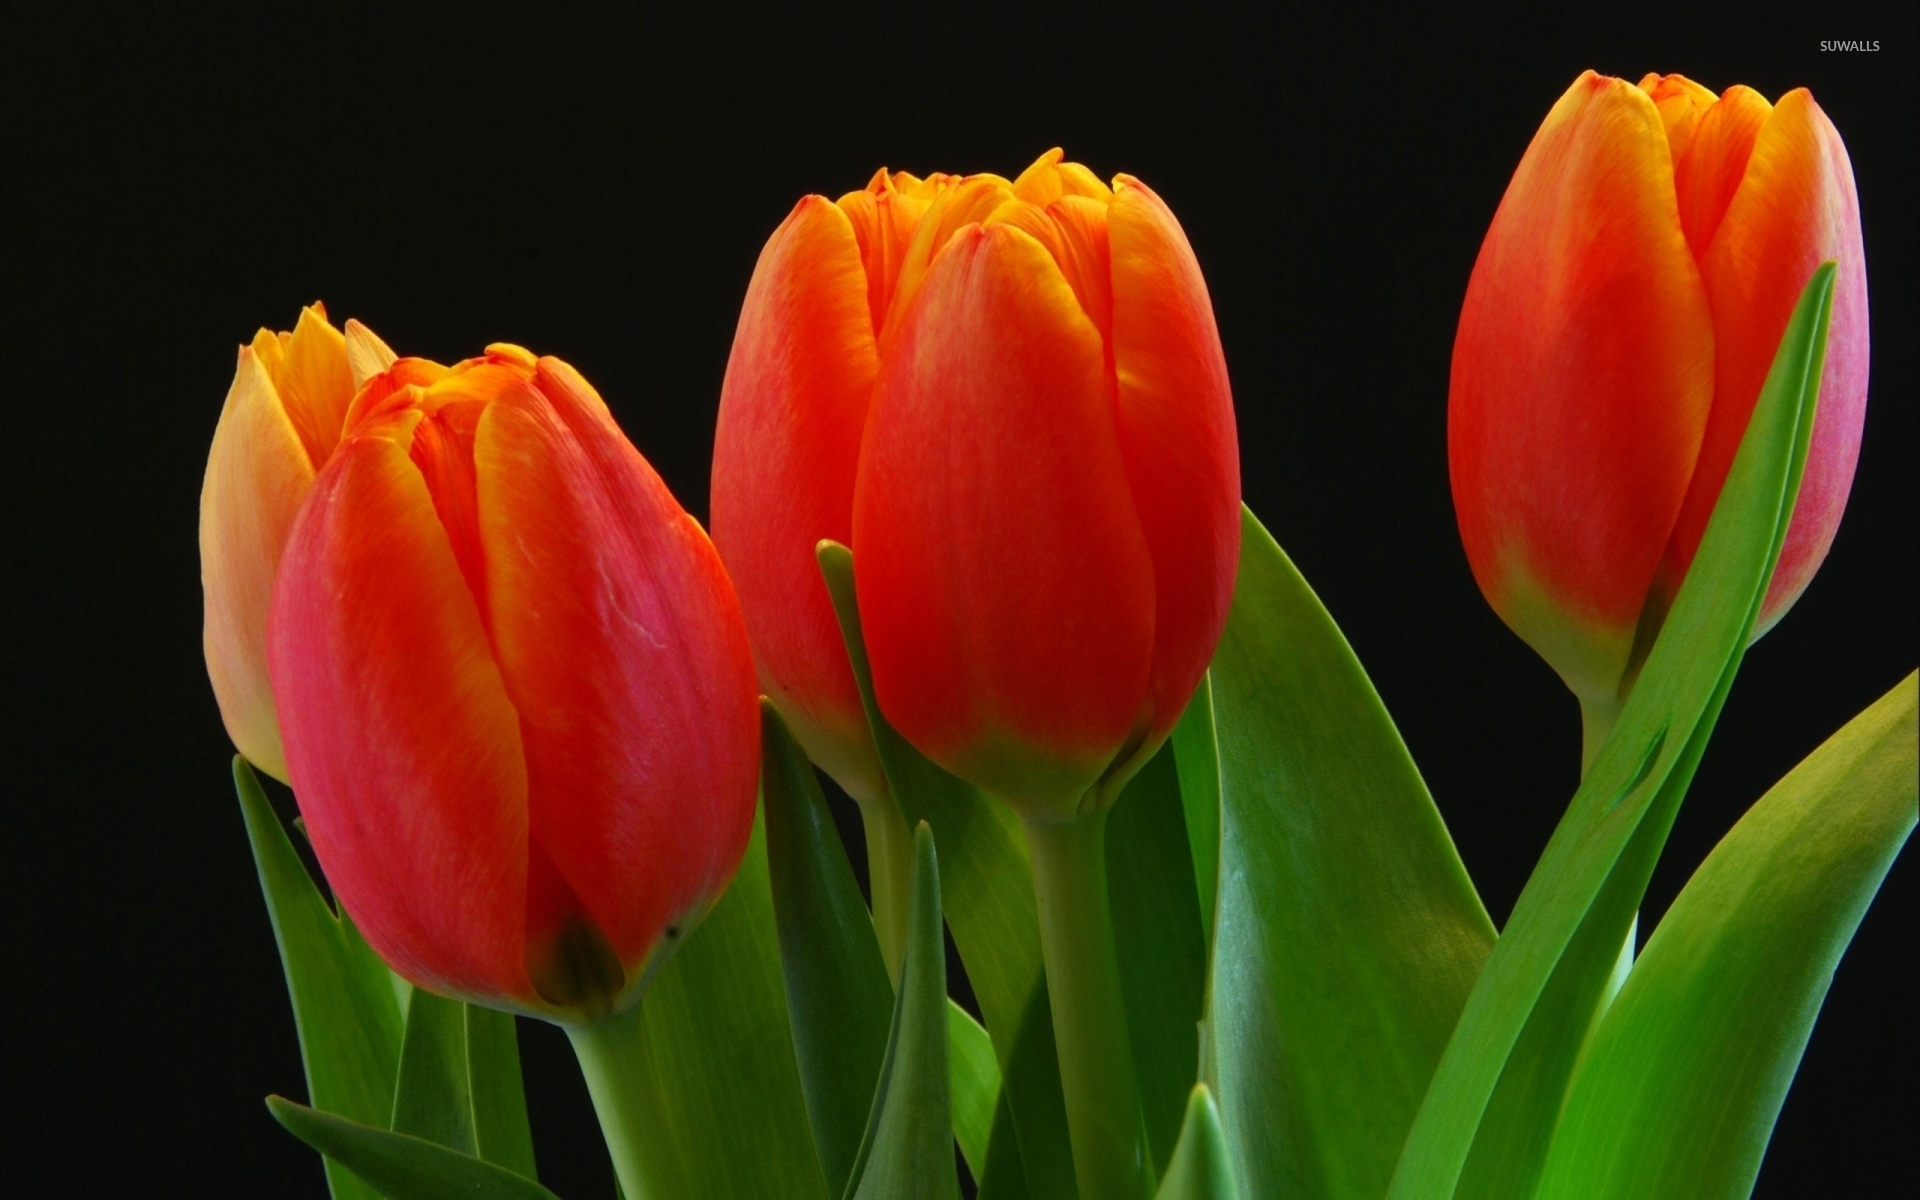 Orange tulips [4] wallpaper - Flower wallpapers - #40141